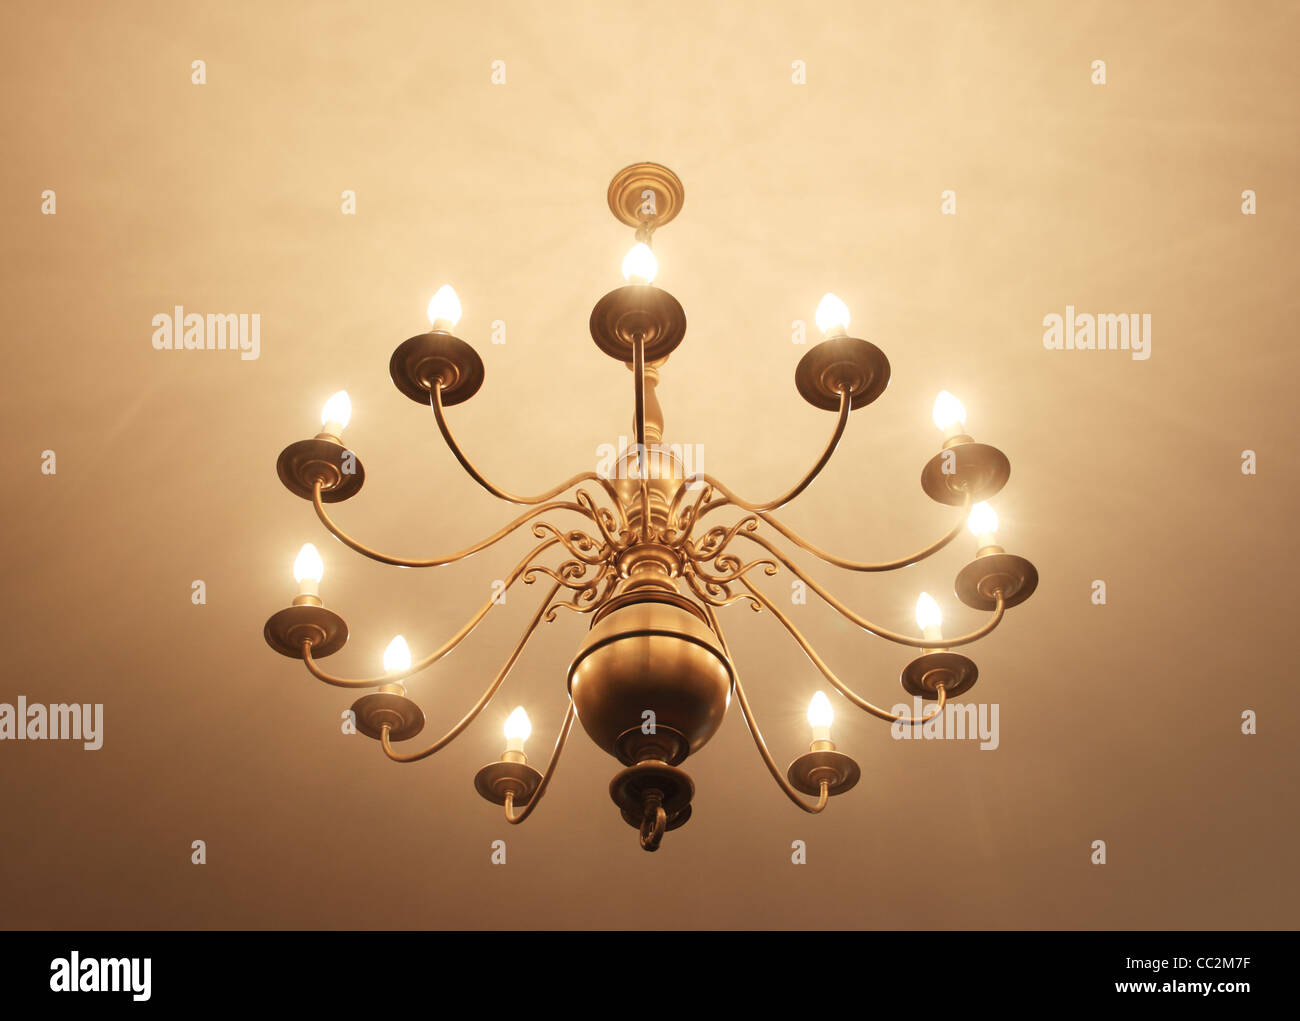 Brass chandelier hanging from ceiling with many lights stock photo brass chandelier hanging from ceiling with many lights arubaitofo Images